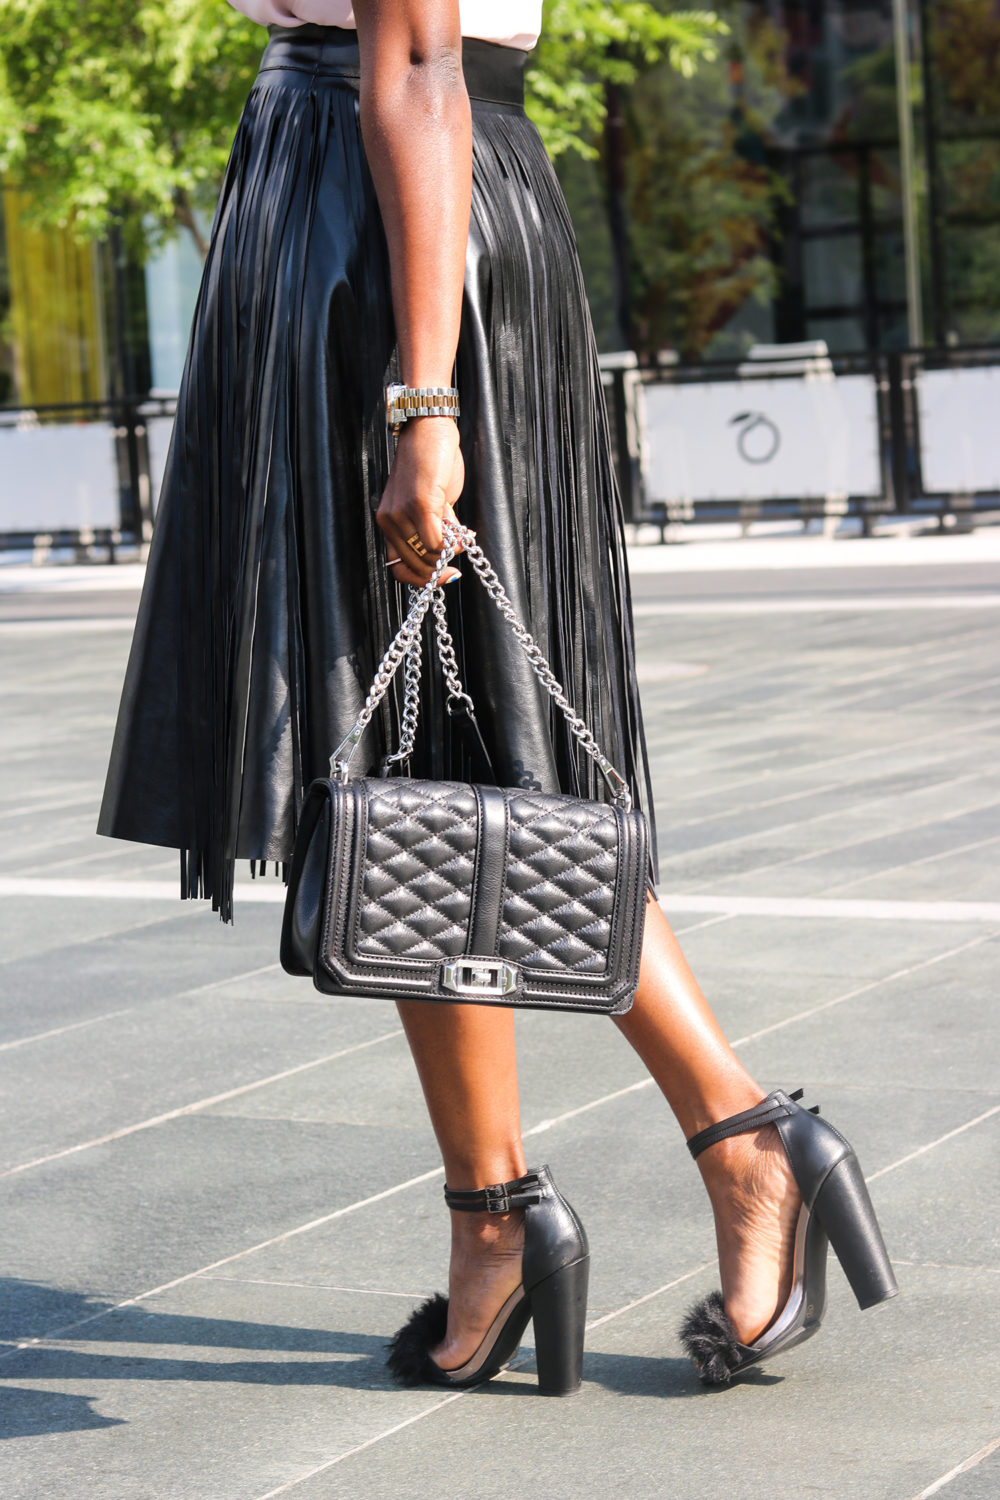 style synopsis quilted bag and fur heeled sandals